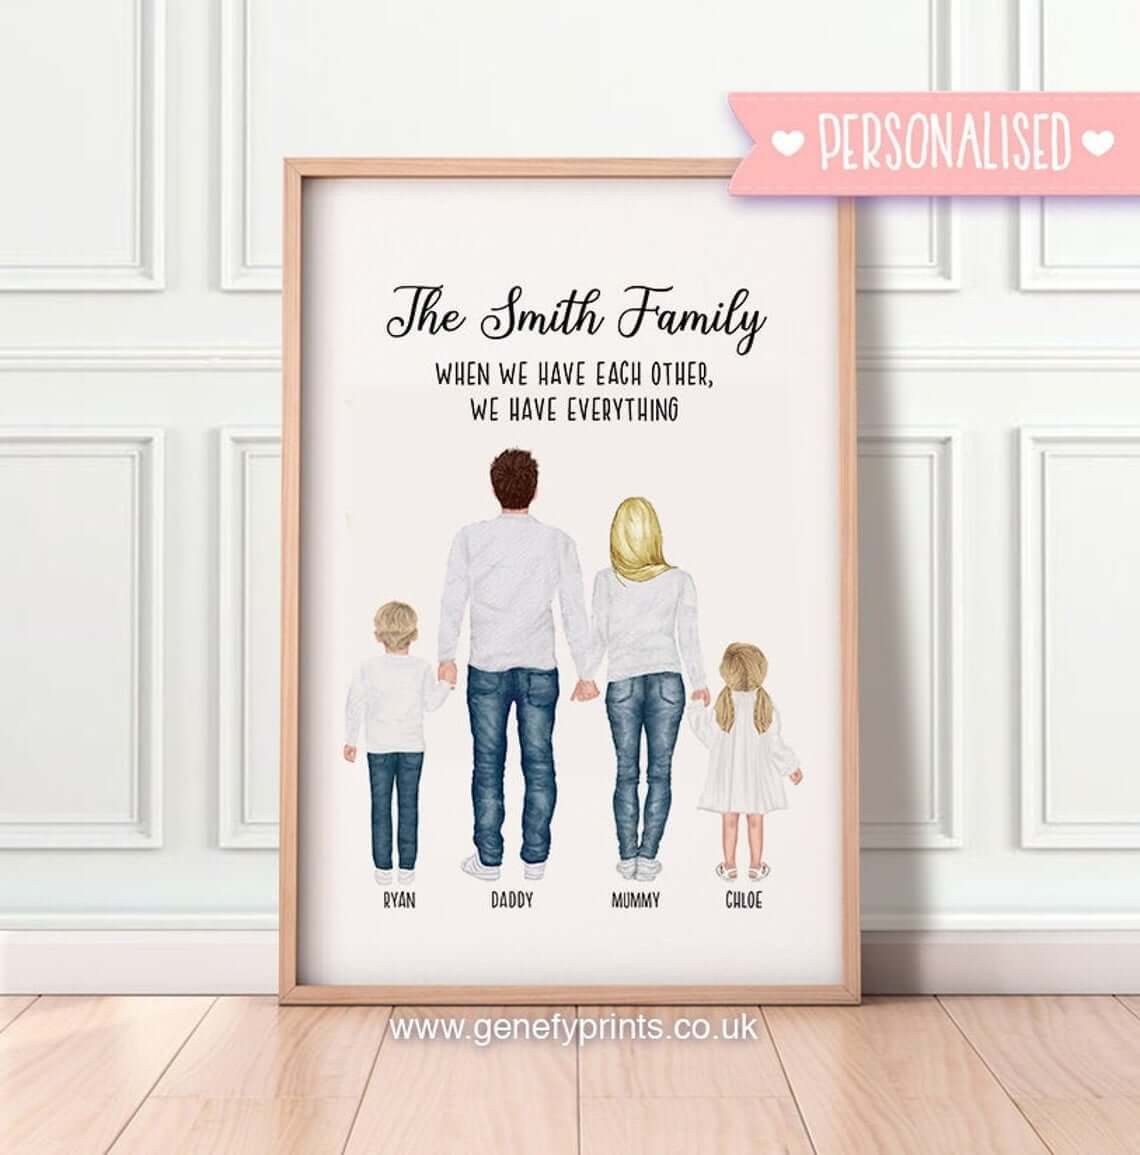 Framed Family Portrait with Positive Message